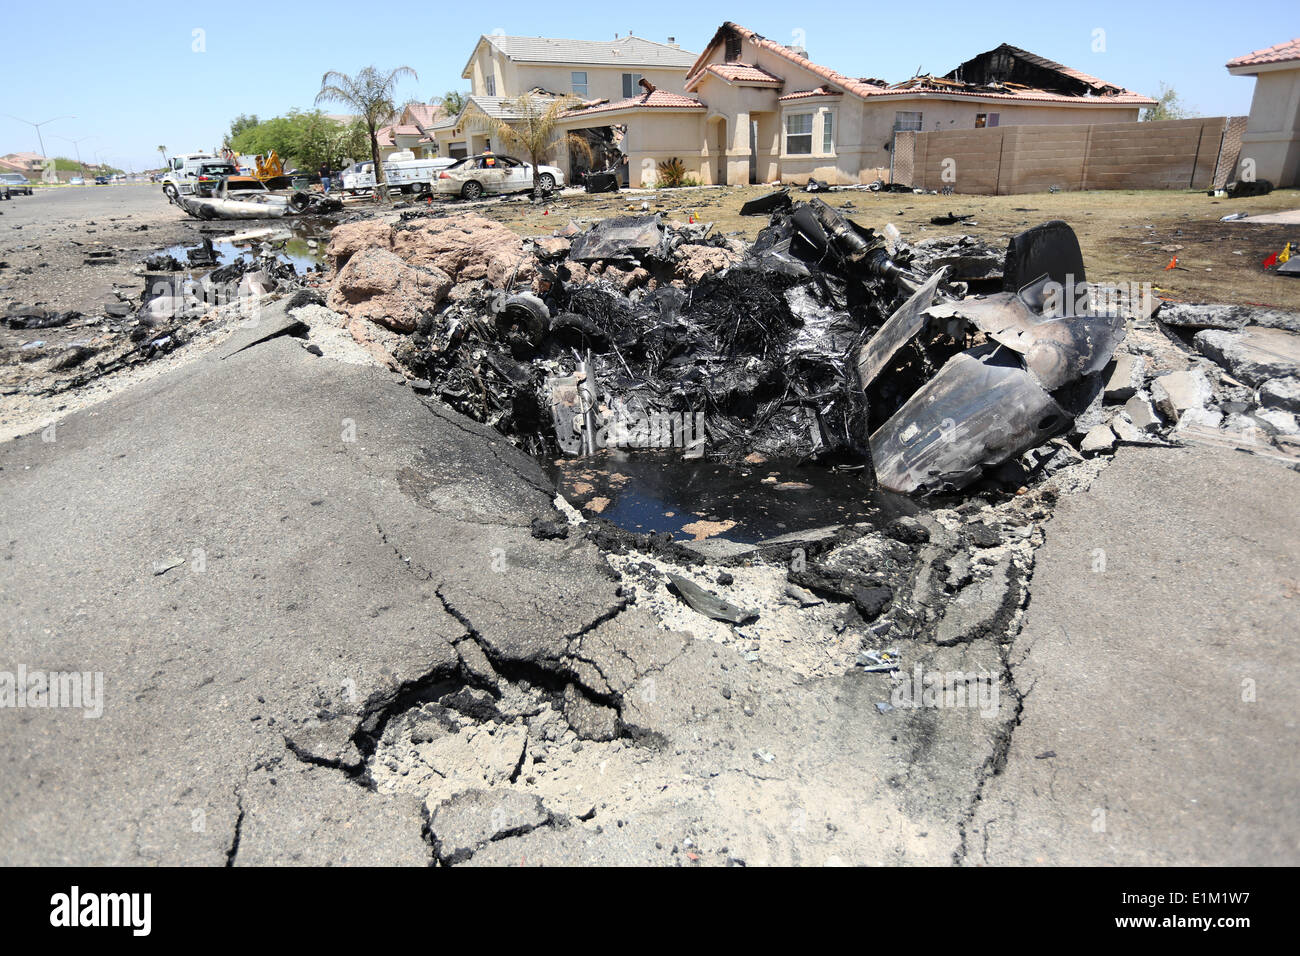 Remains of a US Marine Corps AV-8B Harrier fighter aircraft that crashed in a housing development June 5, 2014 in Imperial, California. Eight homes were evacuated with three destroyed but no injuries reported. - Stock Image